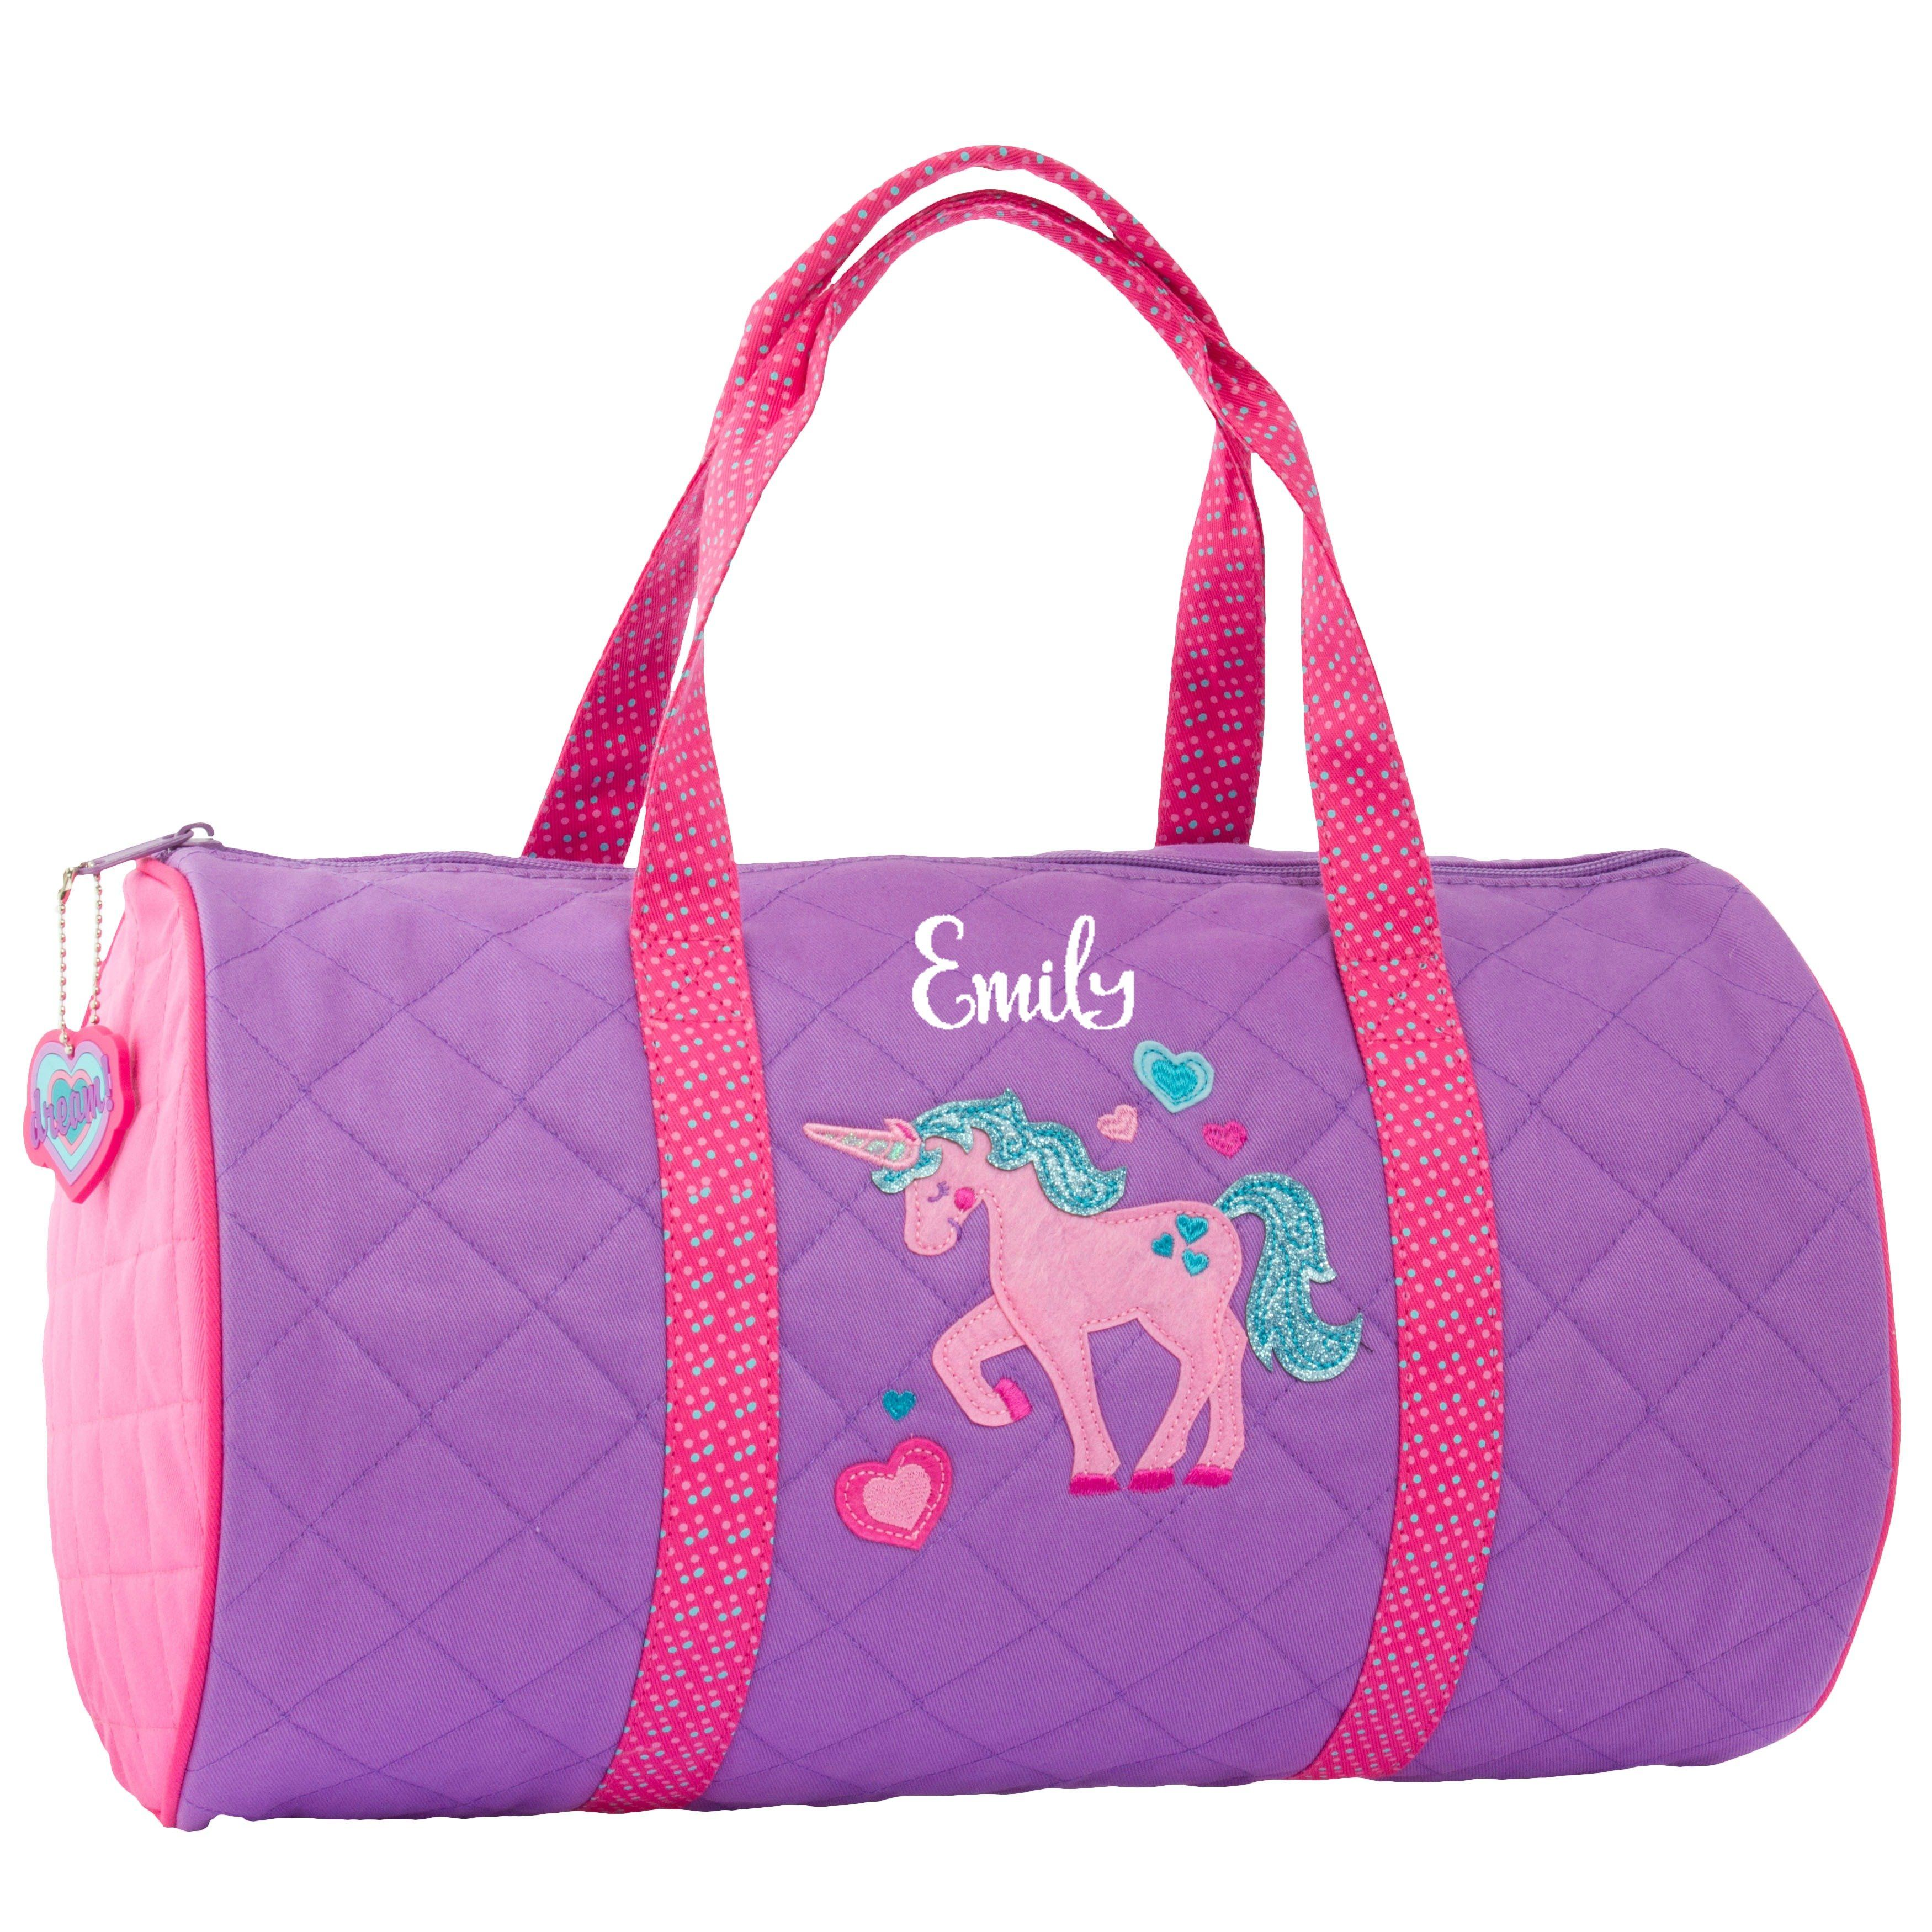 Personalized kids quilted duffle bags stephen joseph